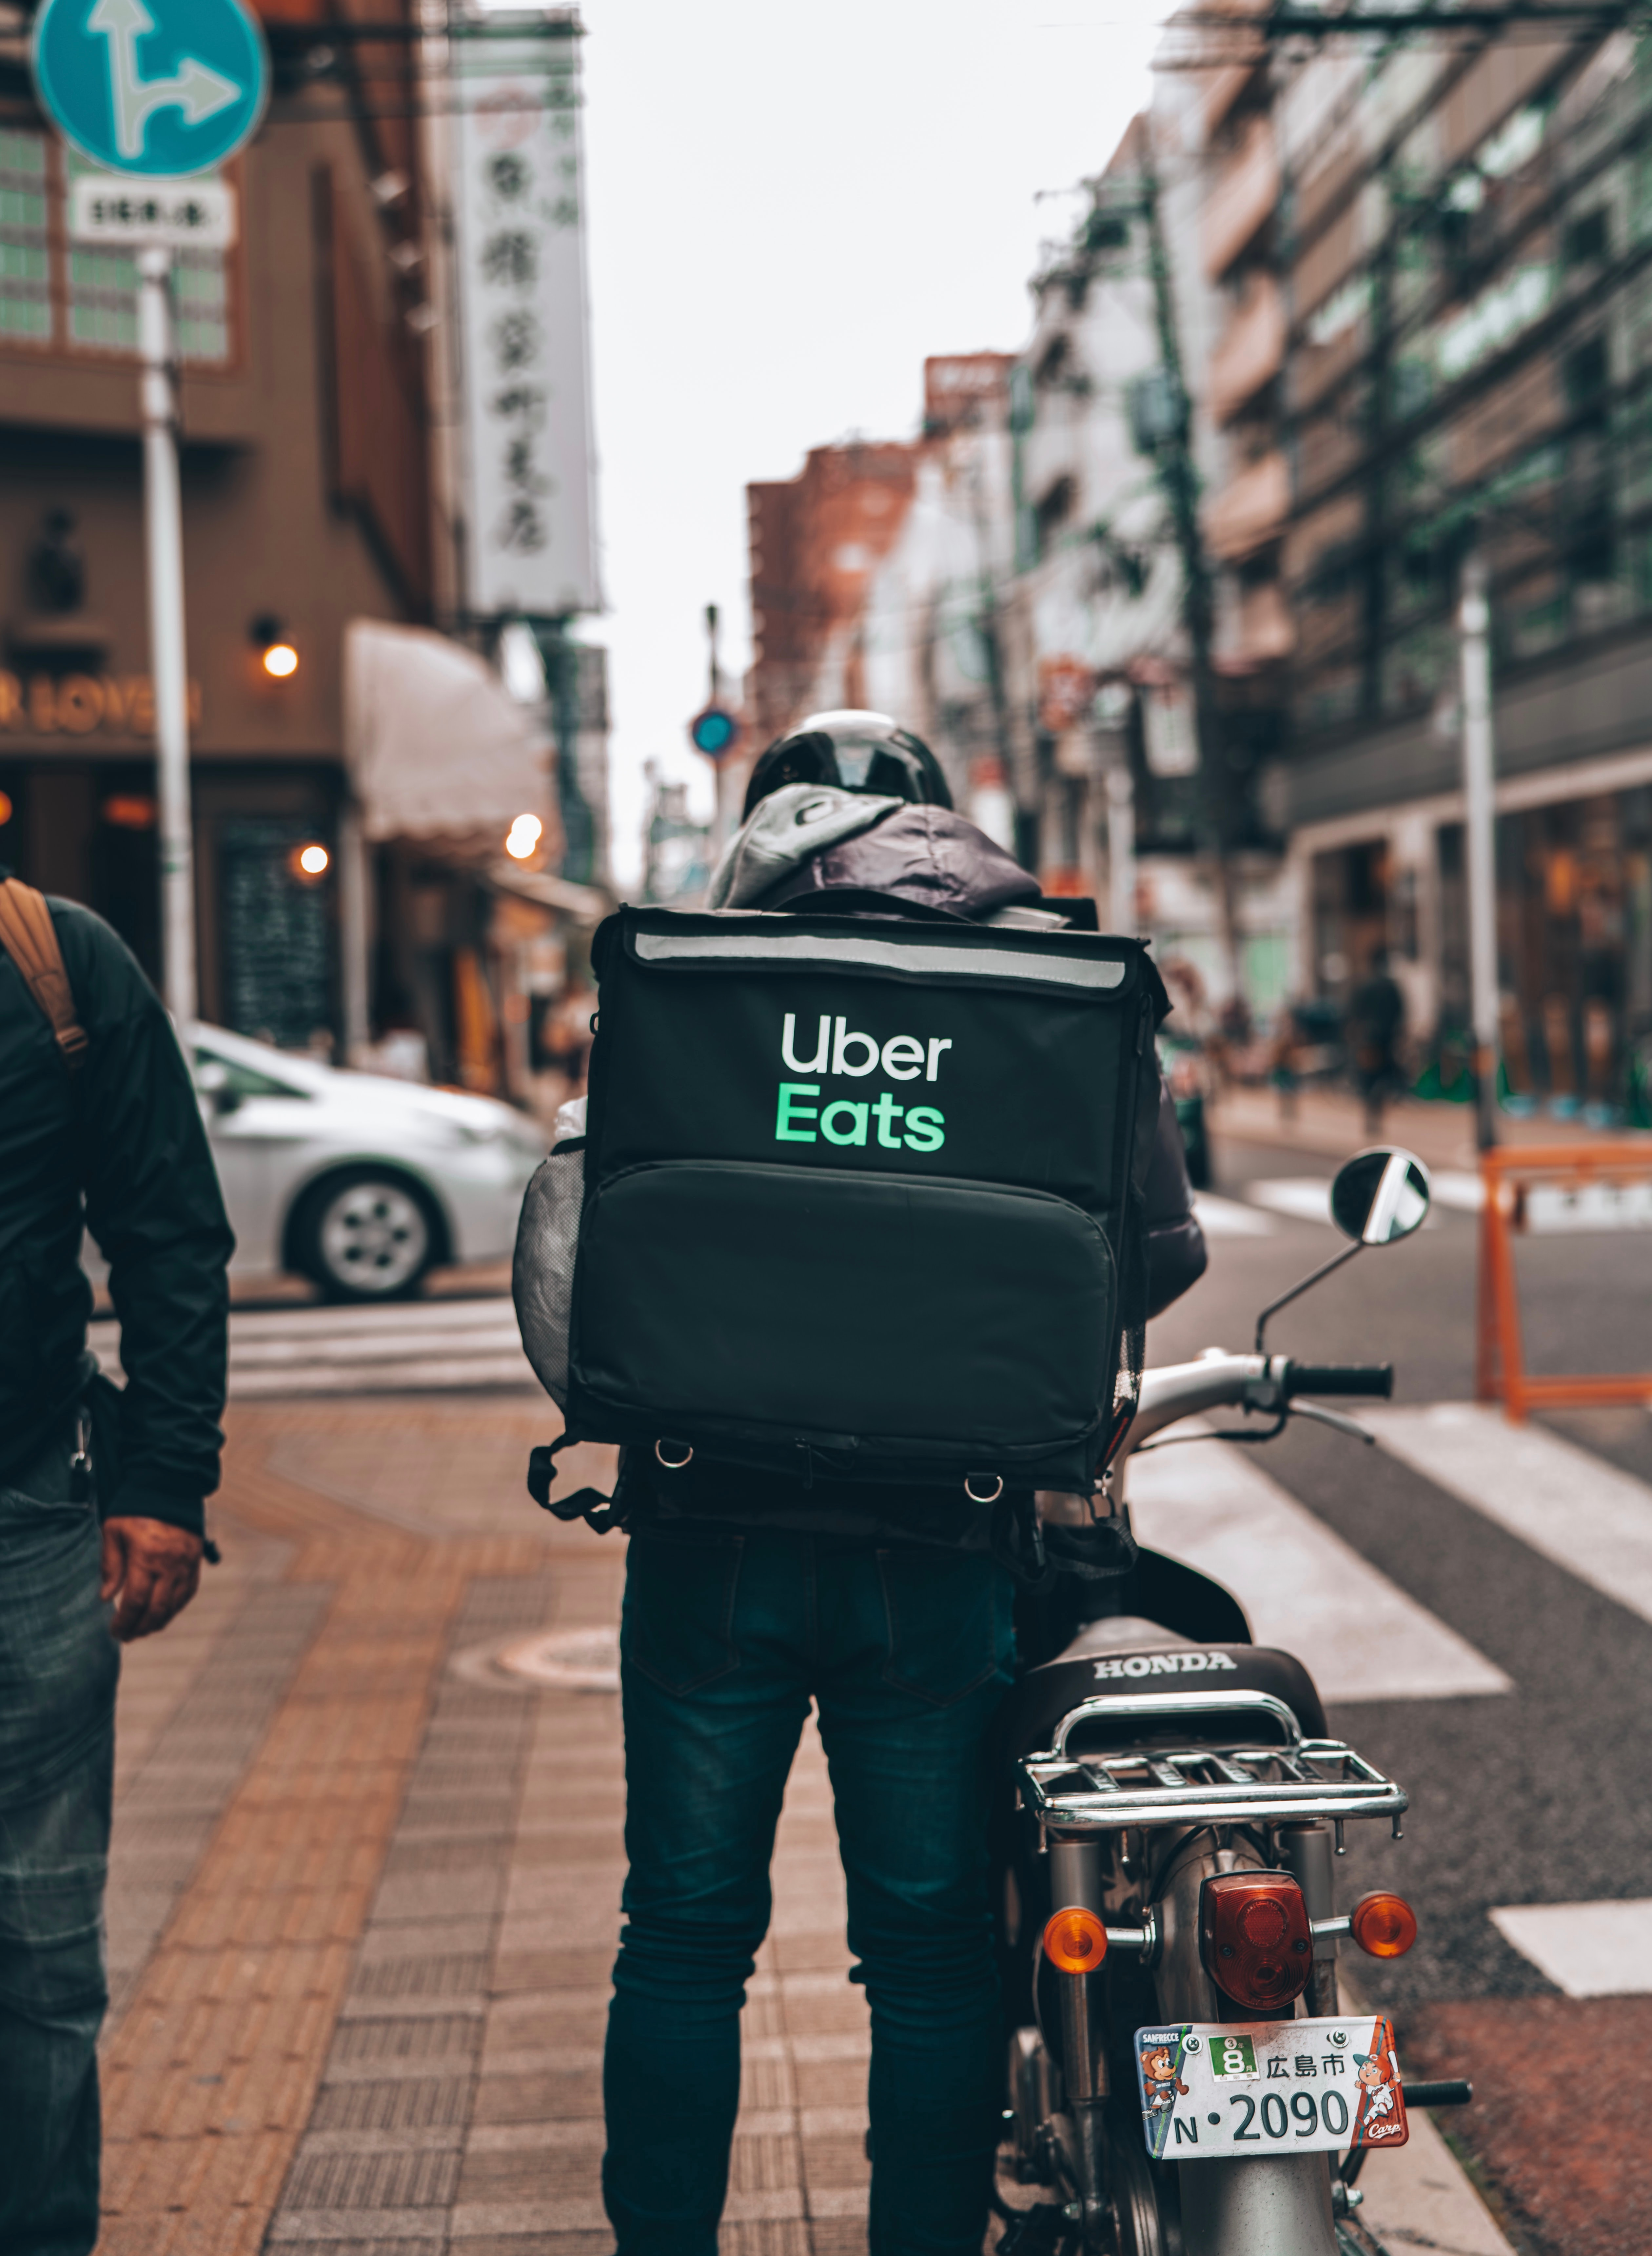 how to sign up for uber eats